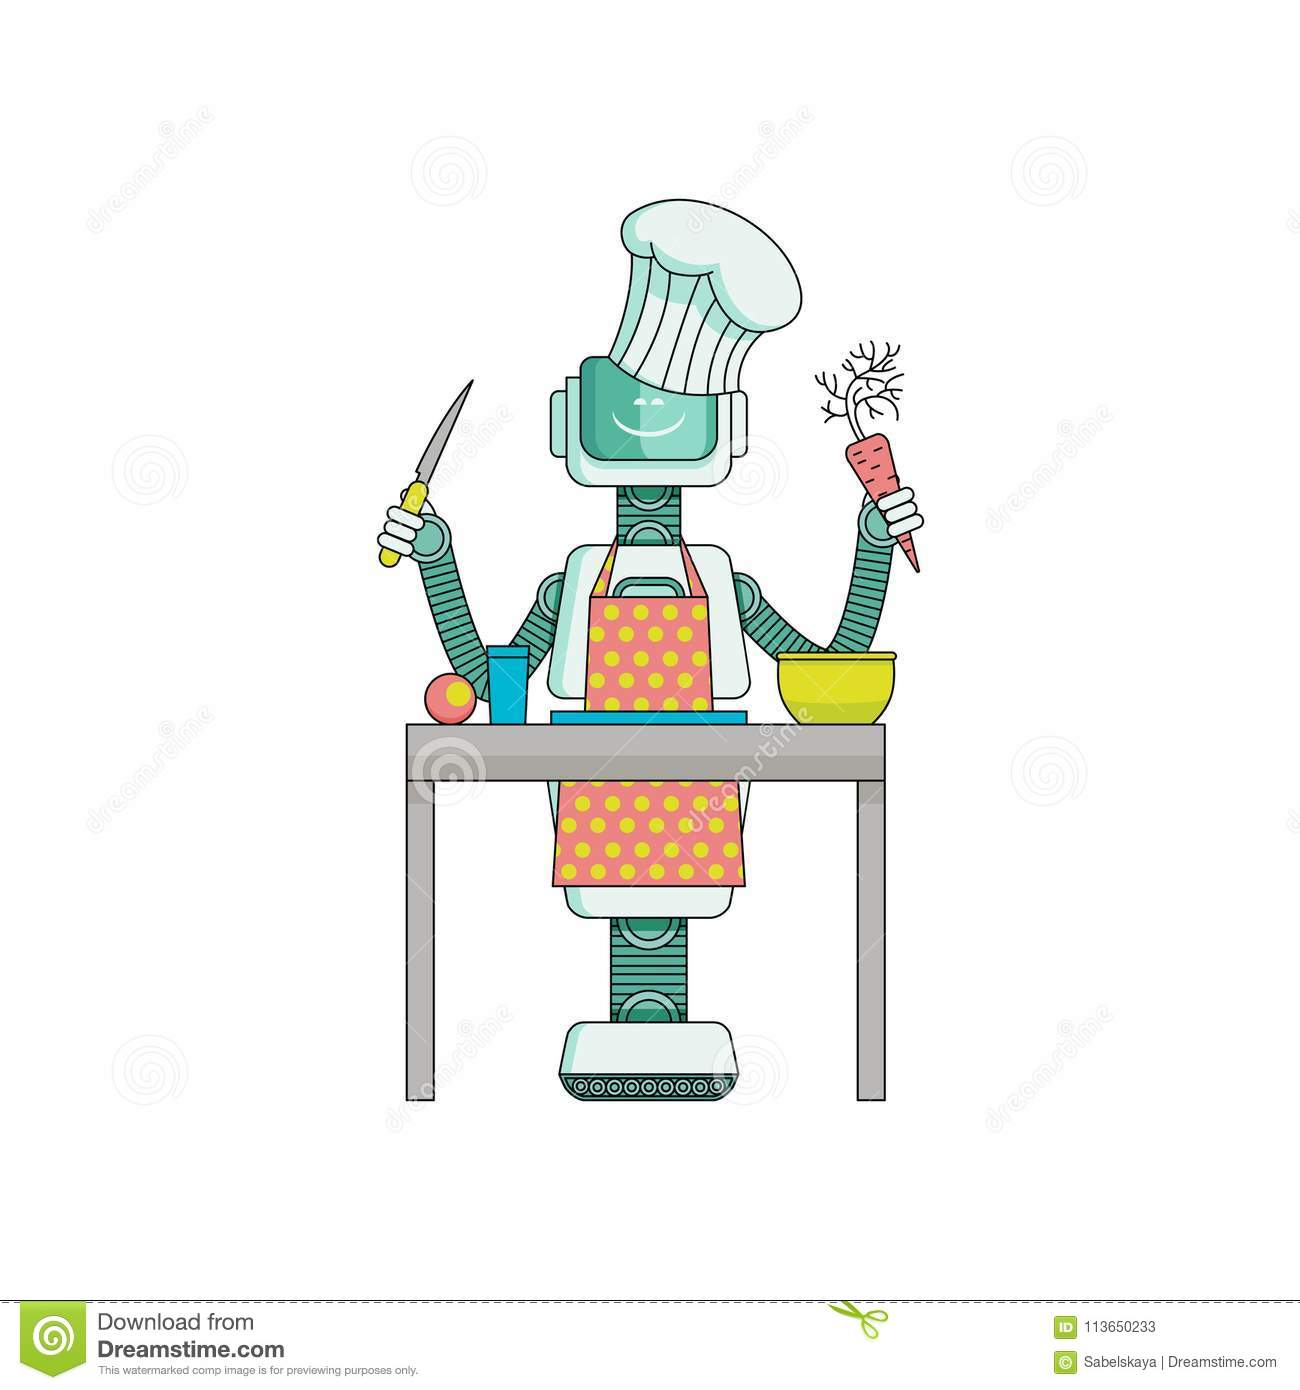 Robot cook prepares food in kitchen isolated on white background.